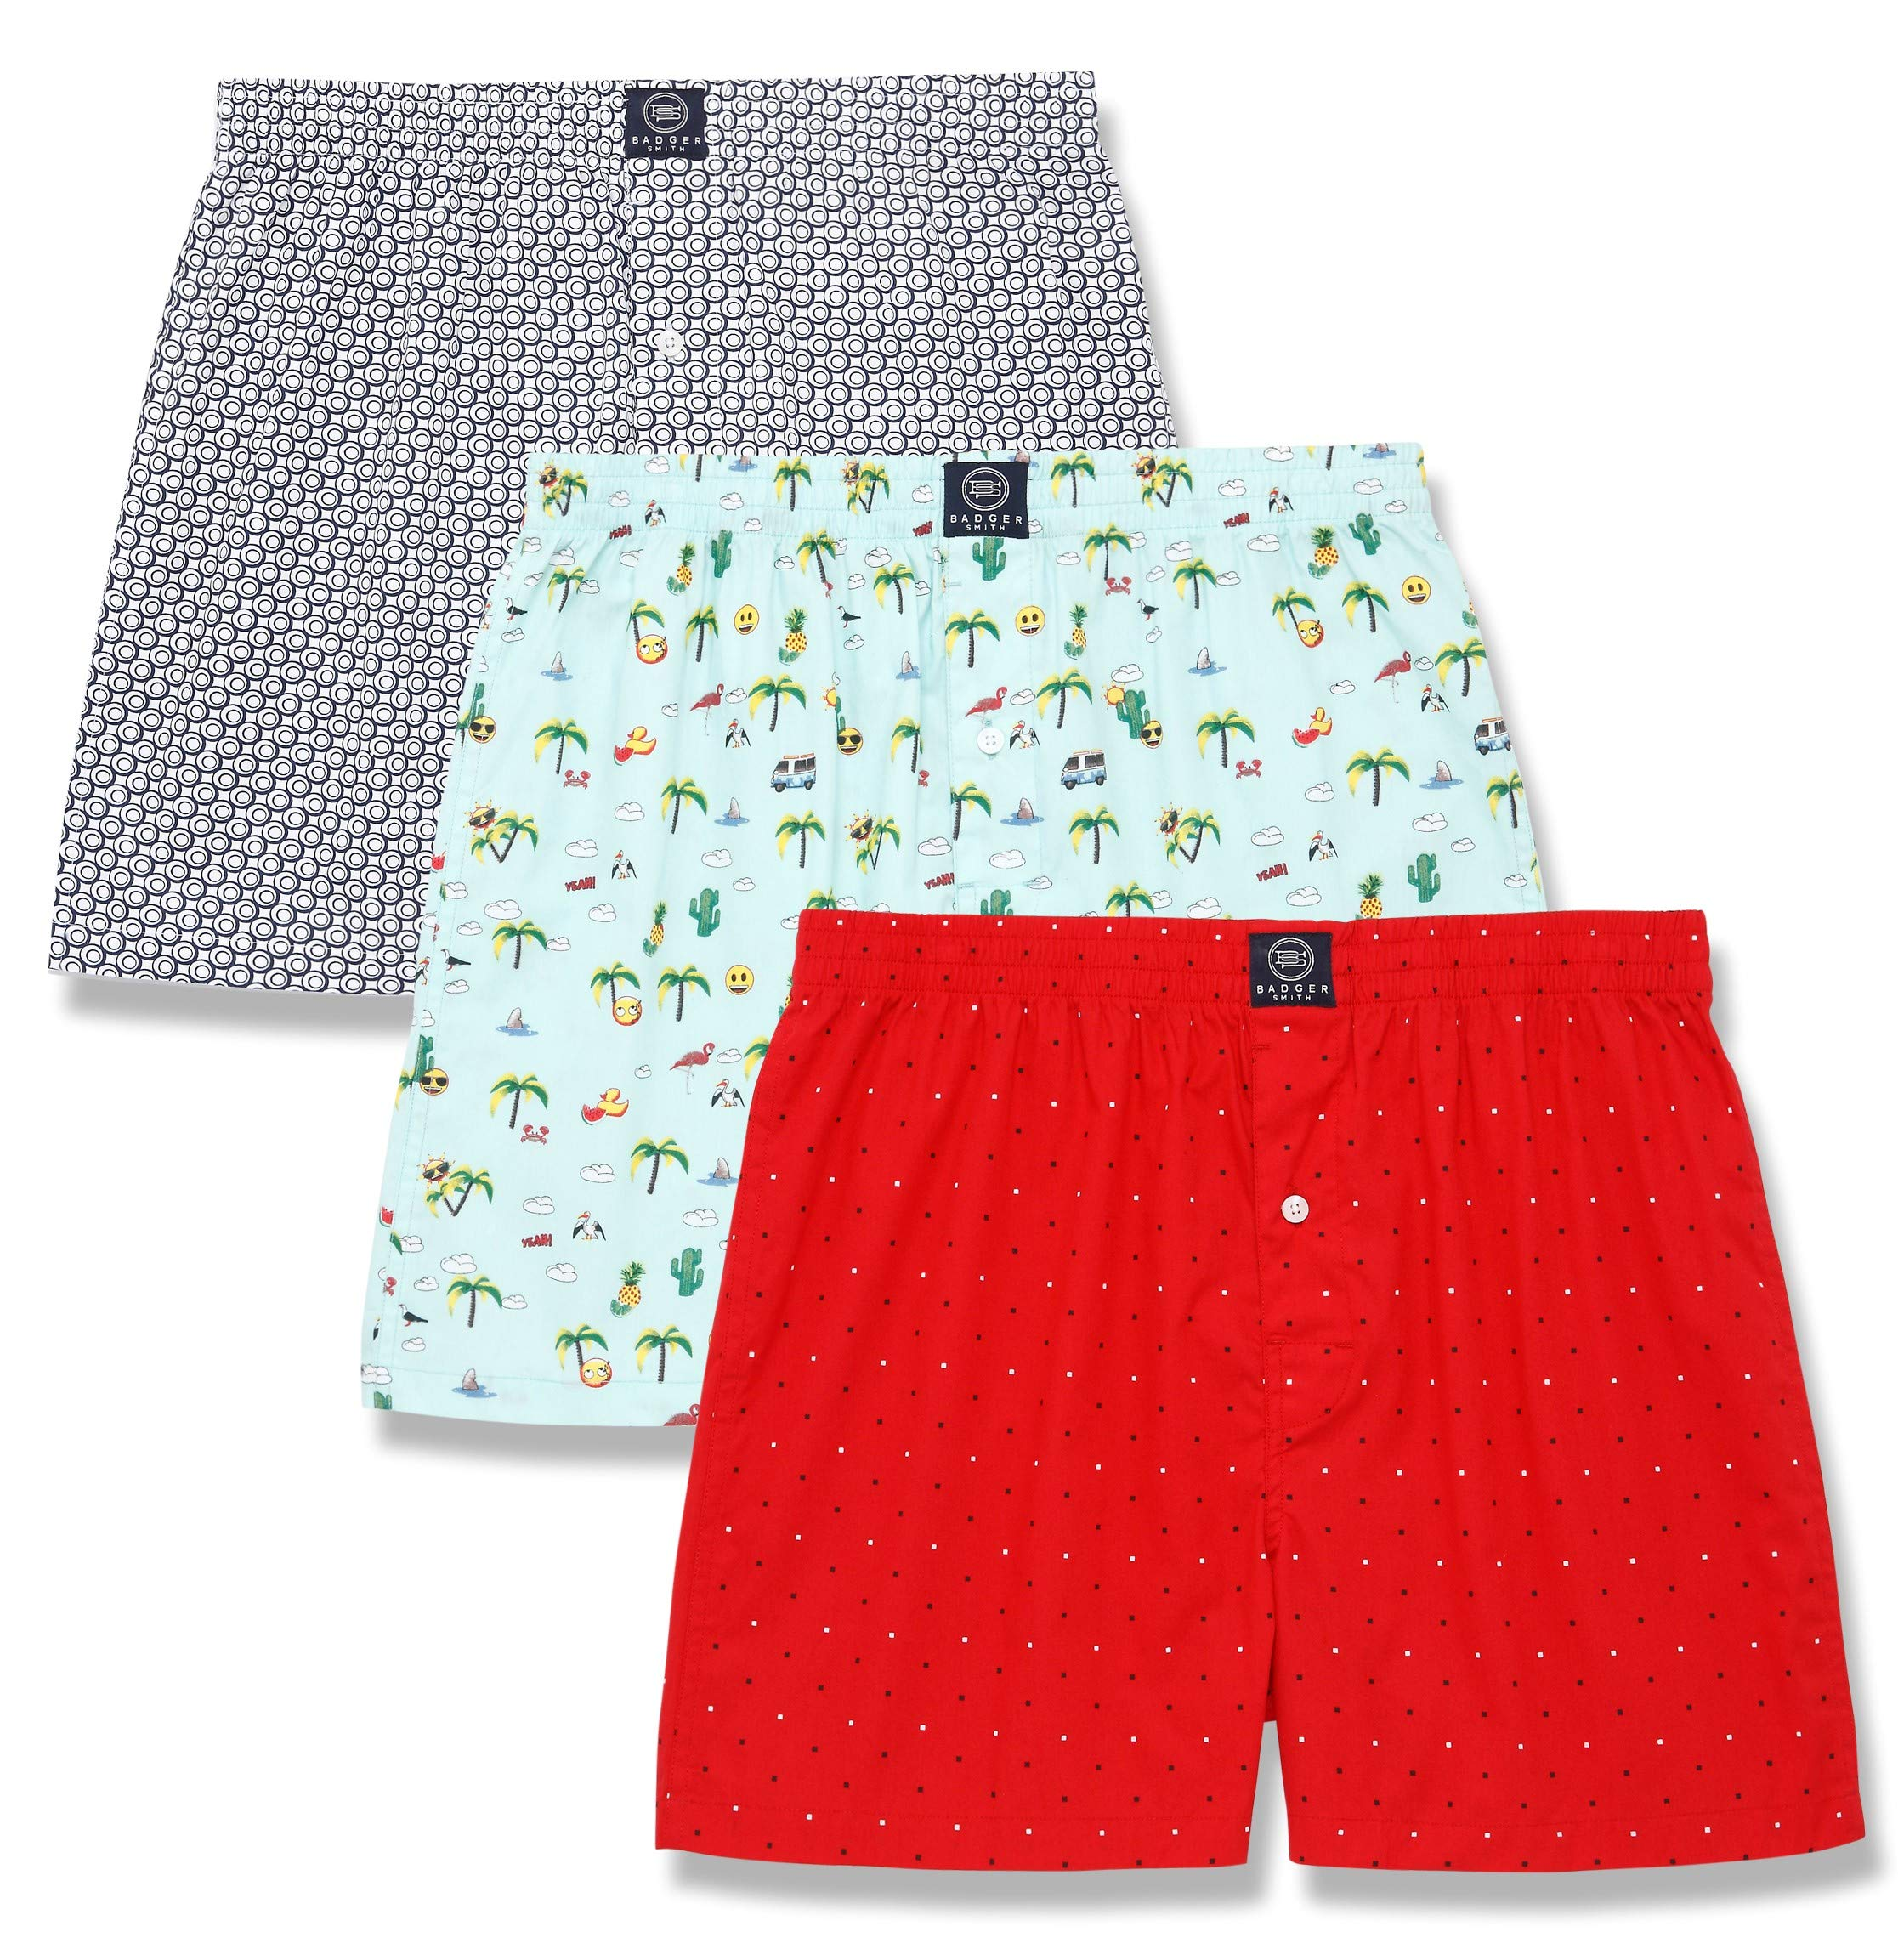 Badger Smith Men's 5 - Pack and 3 - Pack 100% Cotton Print Multicolor Boxer Shorts